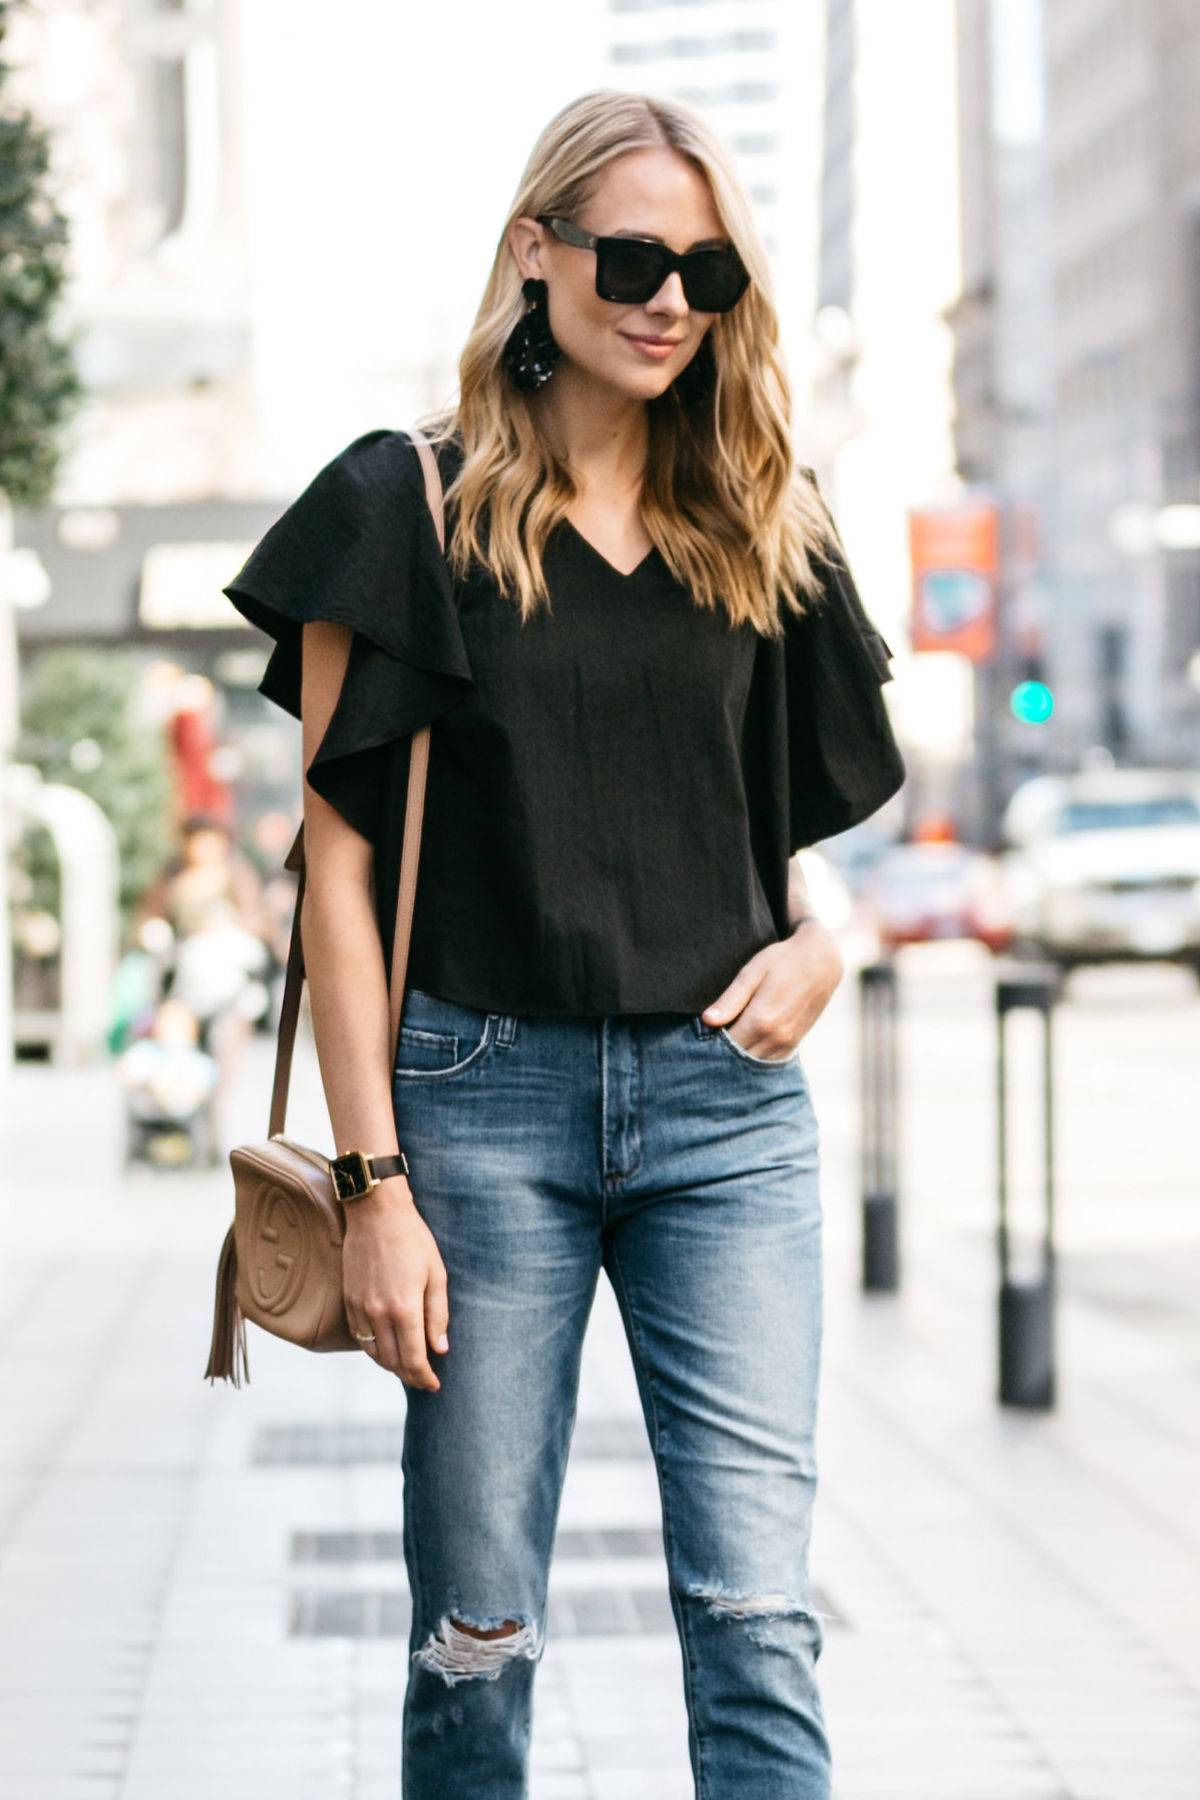 Black Ruffle Sleeve Top, Ripped Skinny Crop Jeans, Gucci Soho Disco Handbag